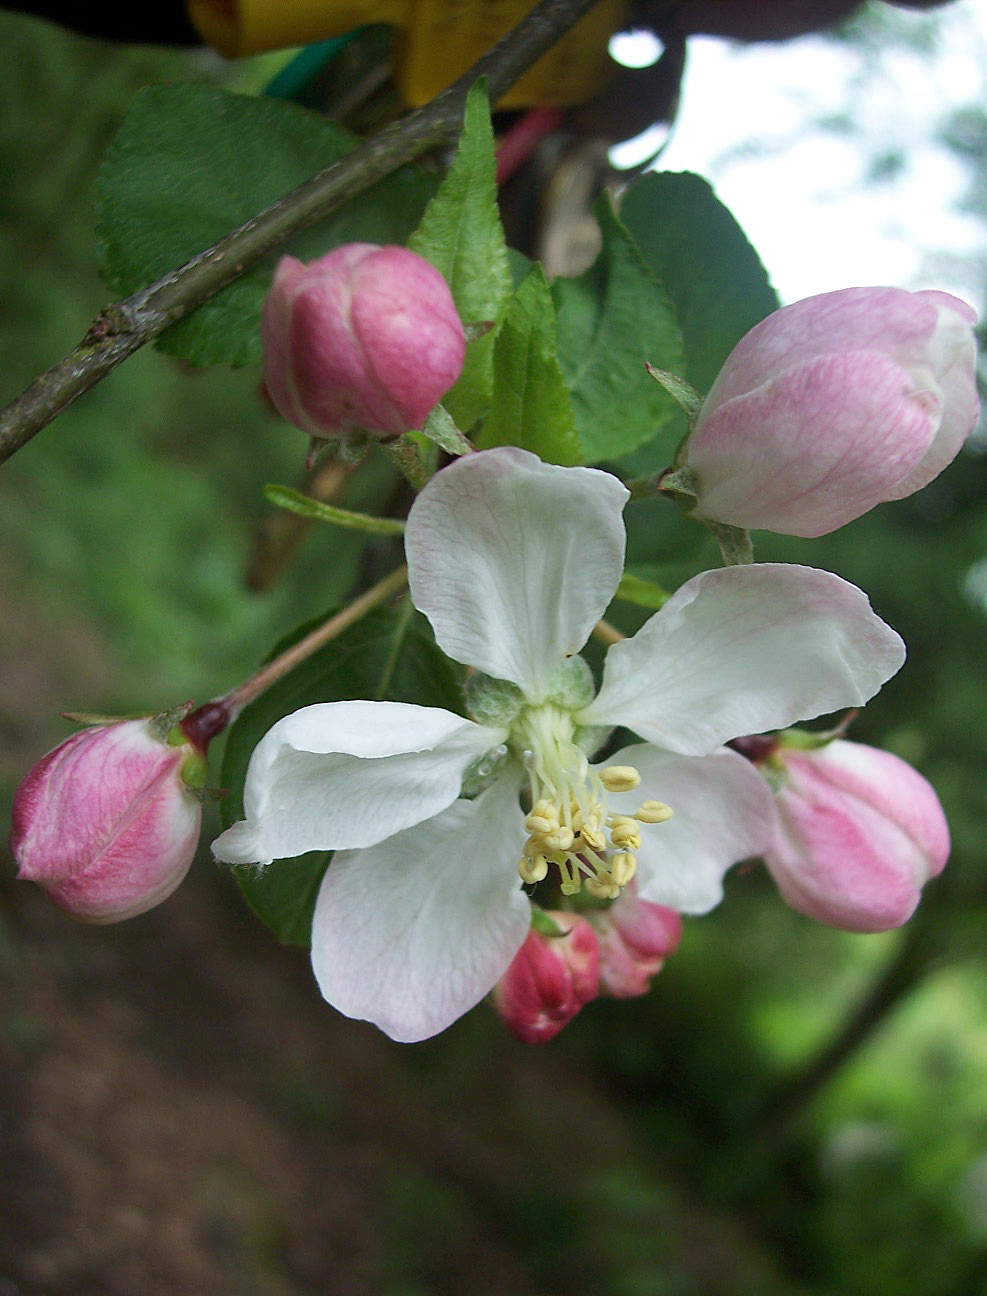 Crab apple coming into flower. Crab apple is a small thorny tree with irregular scaly bark and toothed oval leaves. In May it produces white-pinkish flowers. The fruits are globular about 2cm and look like small apples but are acrid. The tree is native in old oak woods. Picture taken 2nd May 2008.